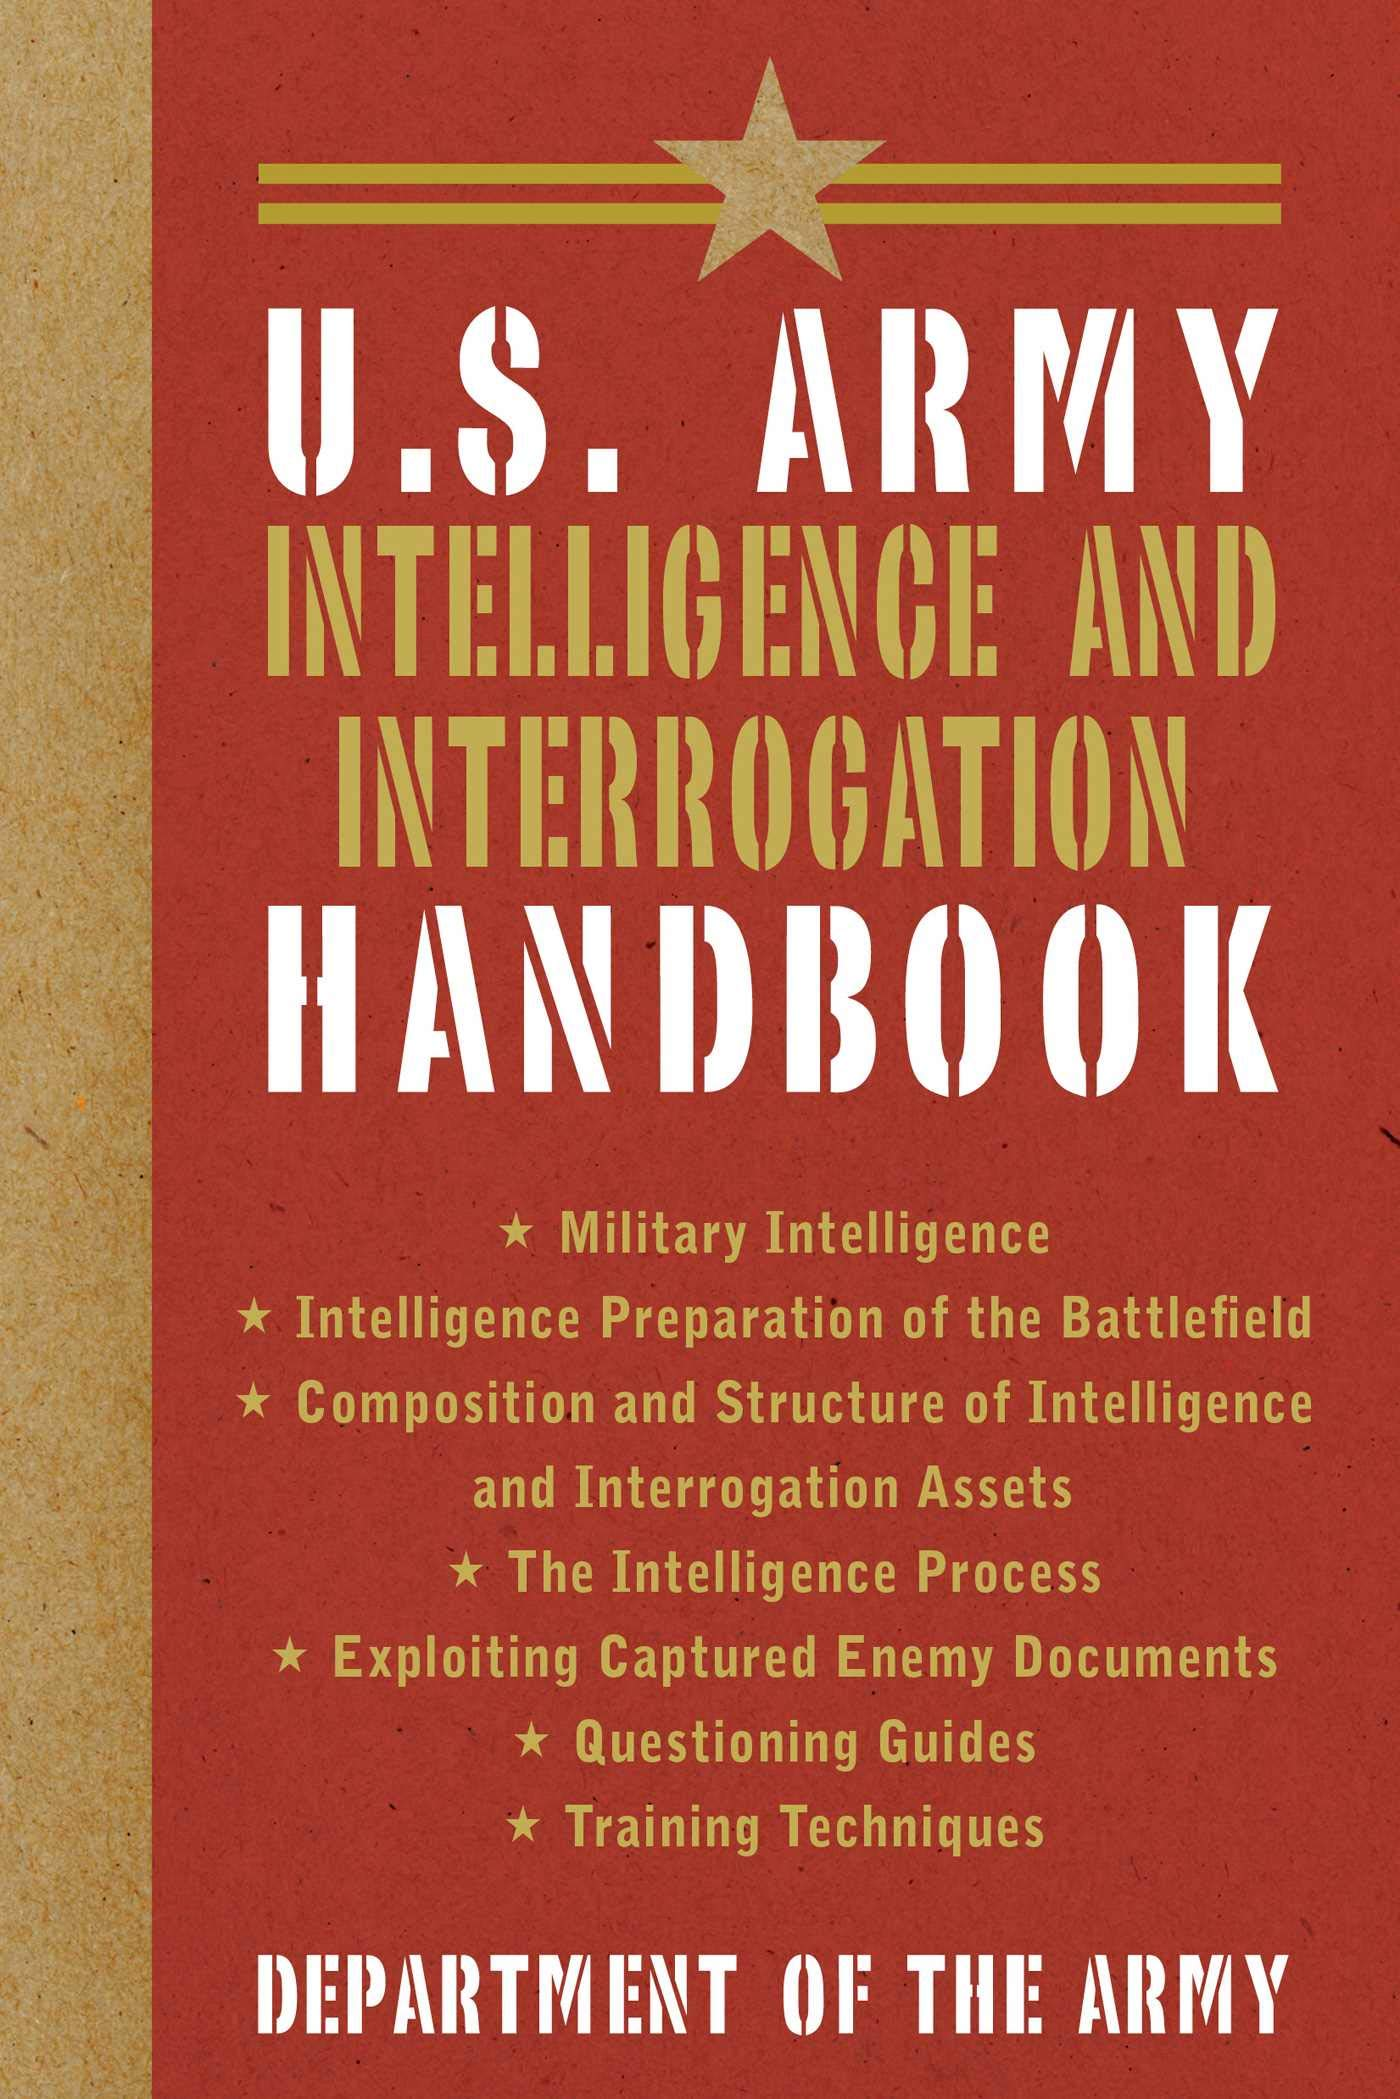 Image OfU.S. Army Intelligence And Interrogation Handbook (US Army Survival)